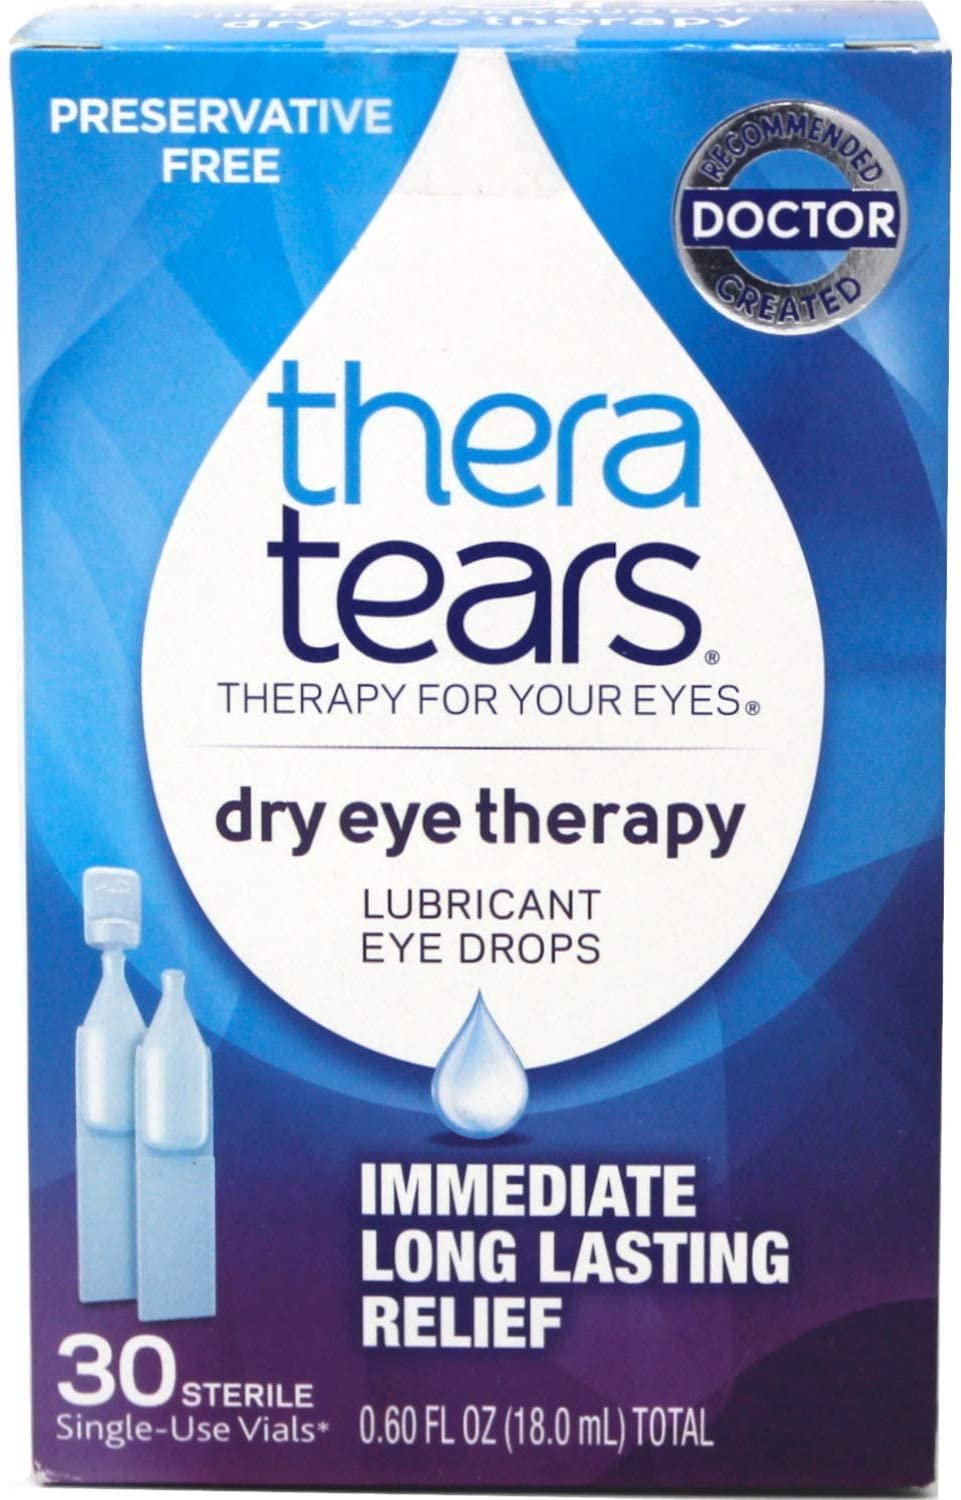 Thera Tears Dry Eye Therapy Lubricant Eye Drops, 32 Single-Use Vials Per Pack (Pack of 3)